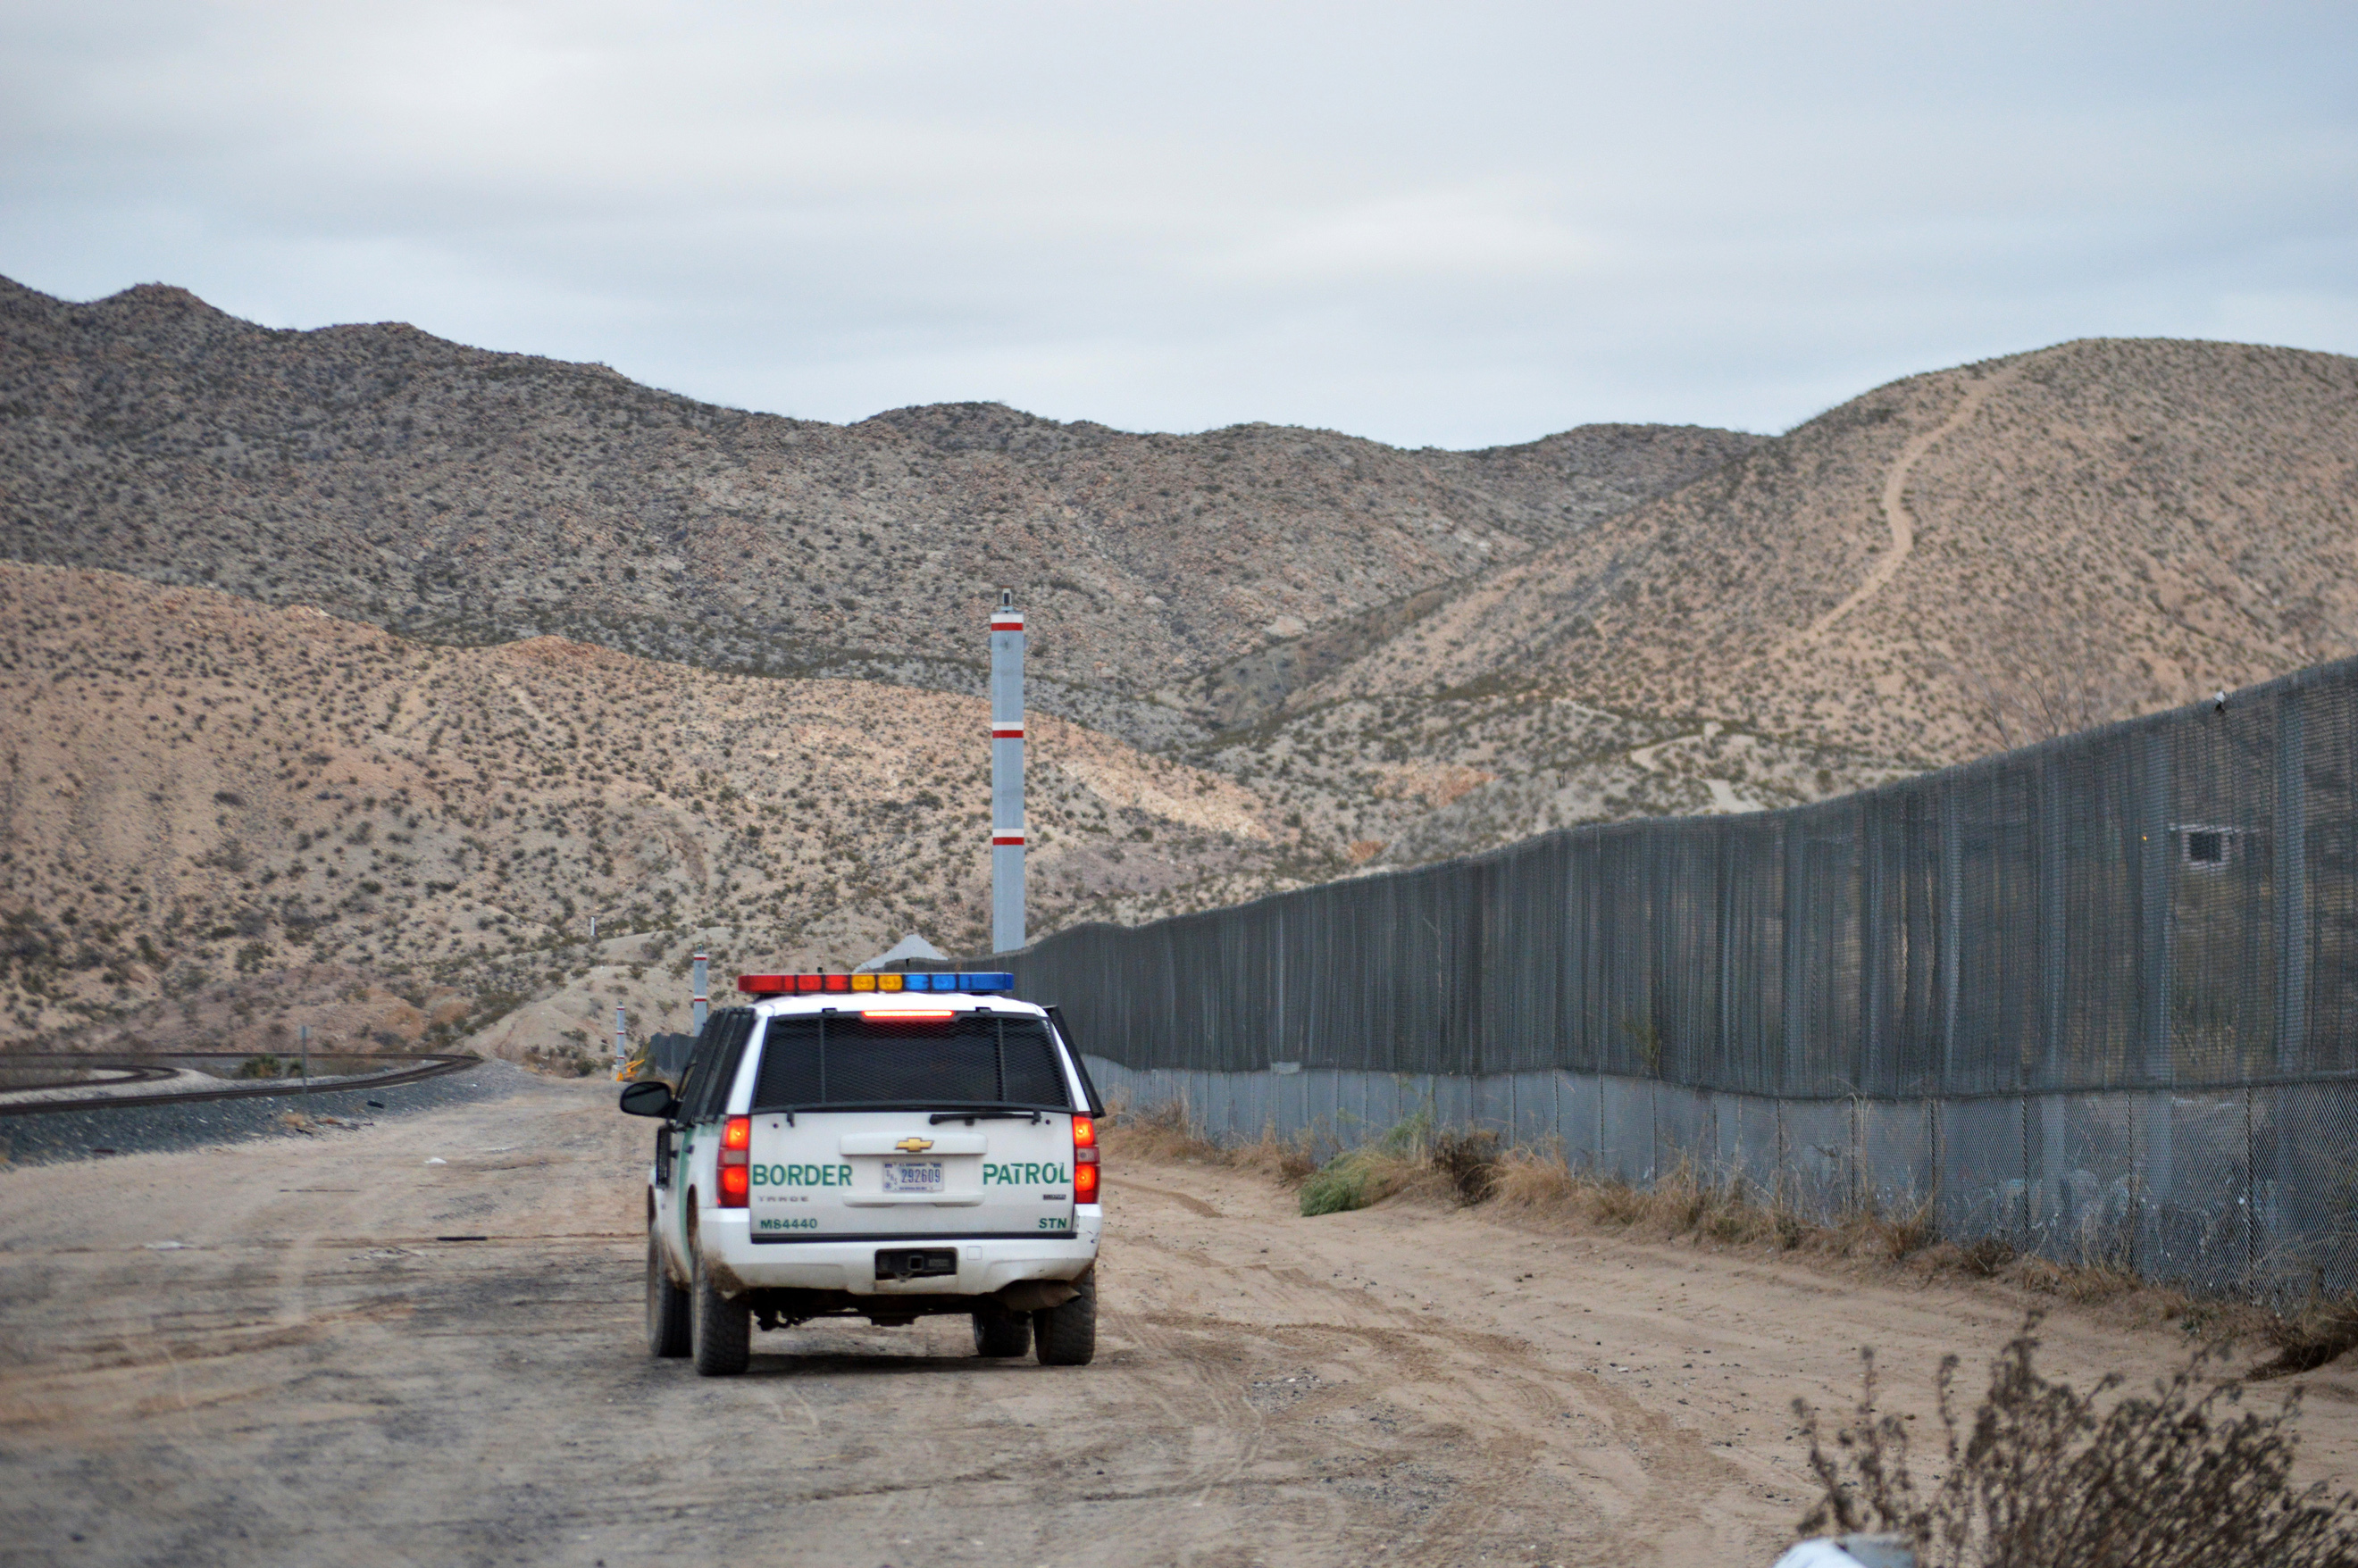 FILE - A U.S. Border Patrol agent patrols Sunland Park along the U.S.-Mexico border next to Ciudad Juarez, Jan. 4, 2016. A 7-year-old girl who had crossed the U.S.-Mexico border with her father, died after being taken into the custody of the U.S. Bor...